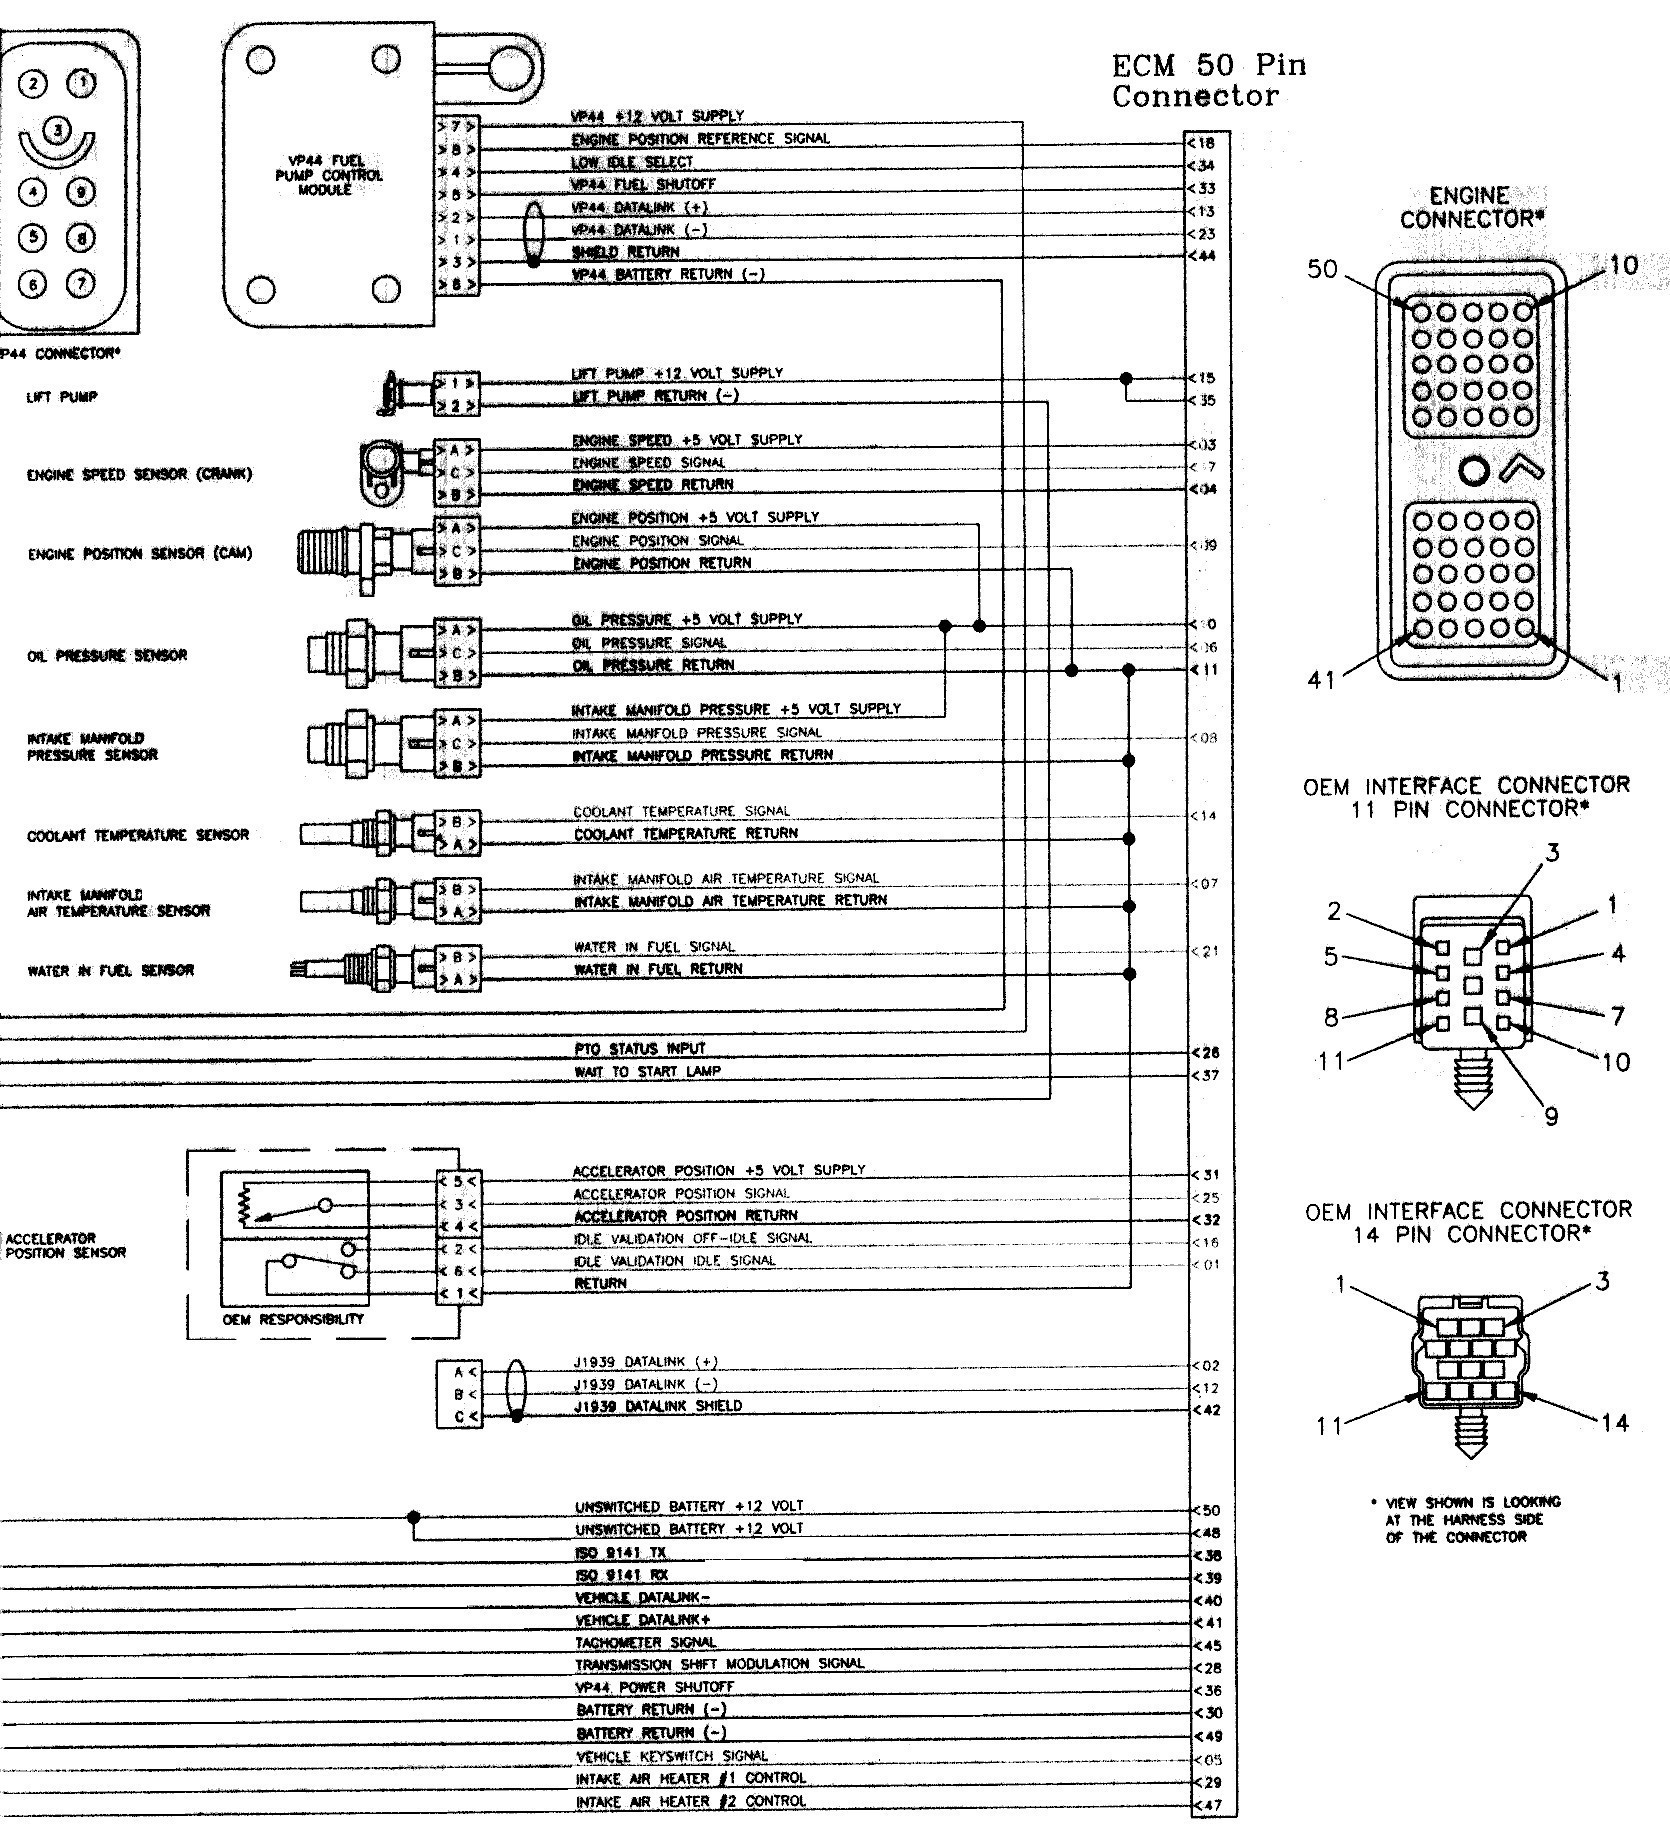 Get 1999 Dodge Cummins Ecm Wiring Diagram Sample